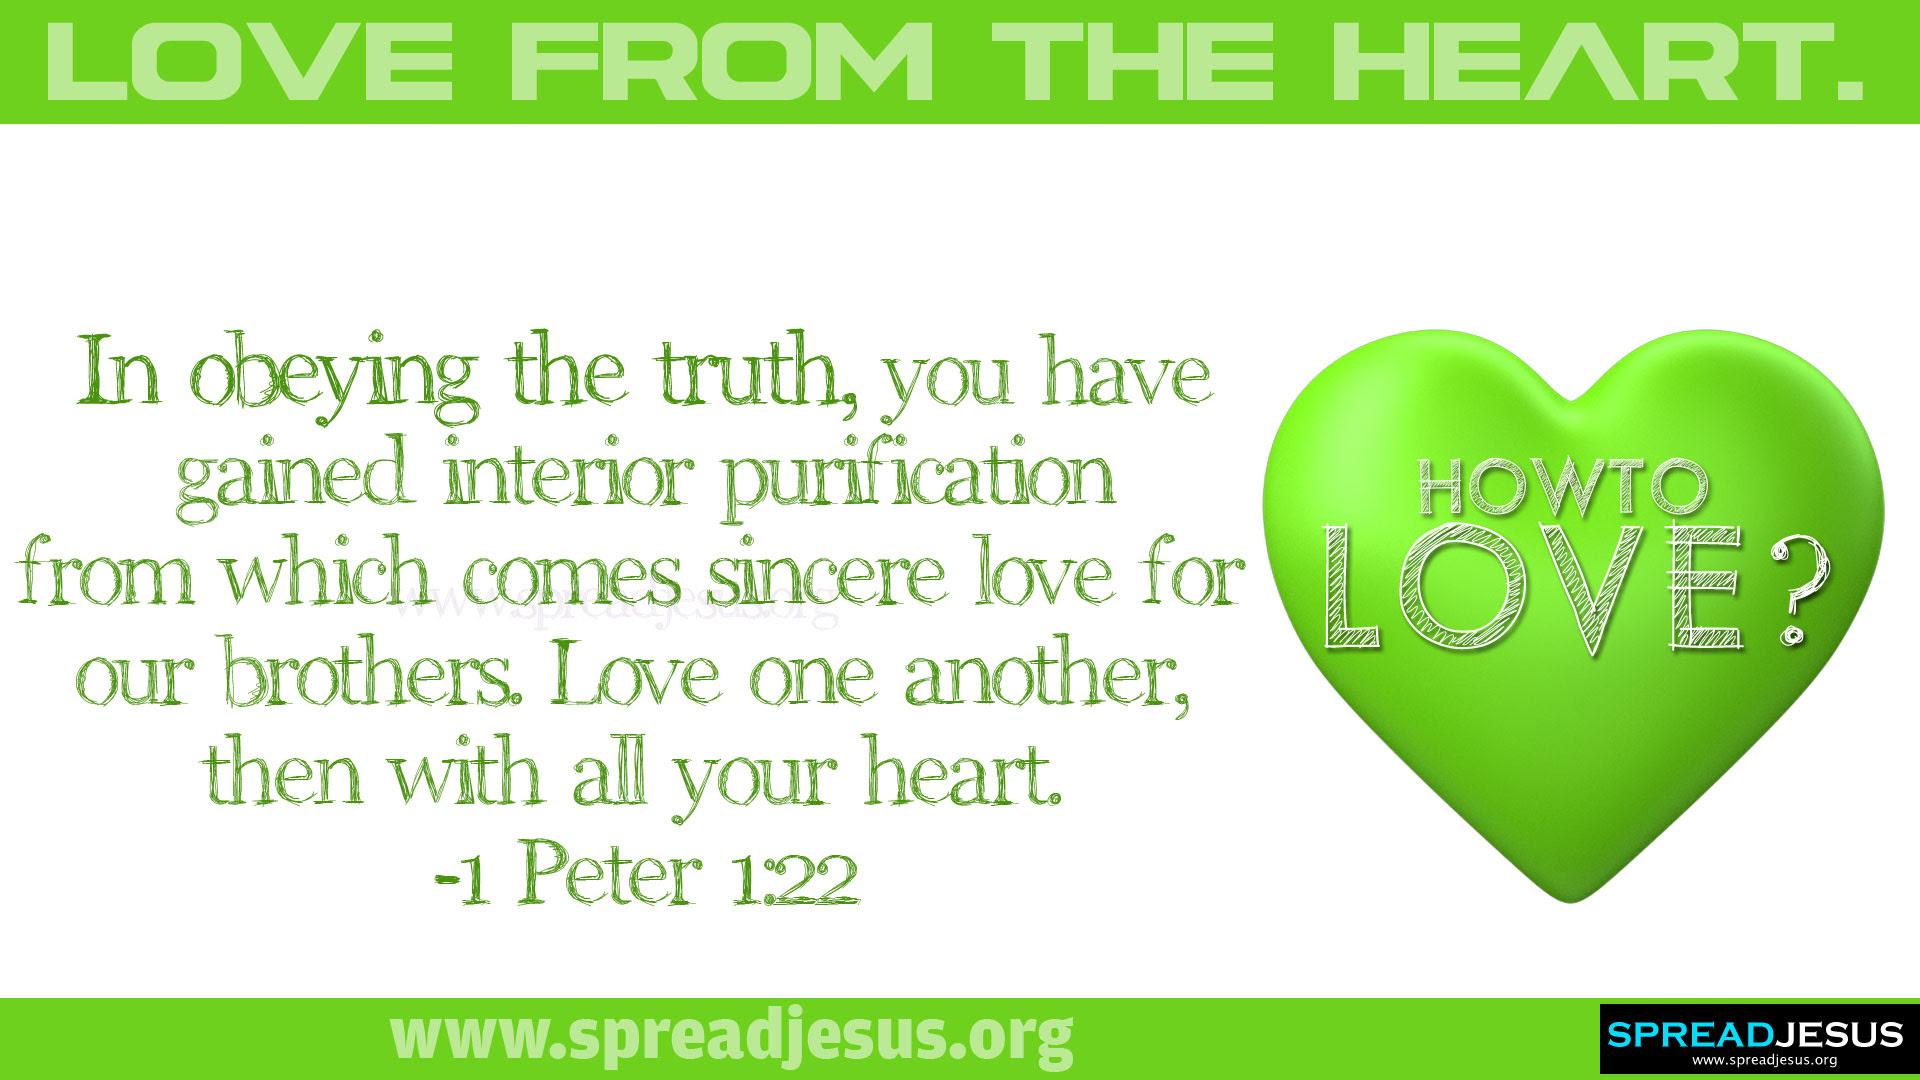 How to love LOVE FROM THE HEART